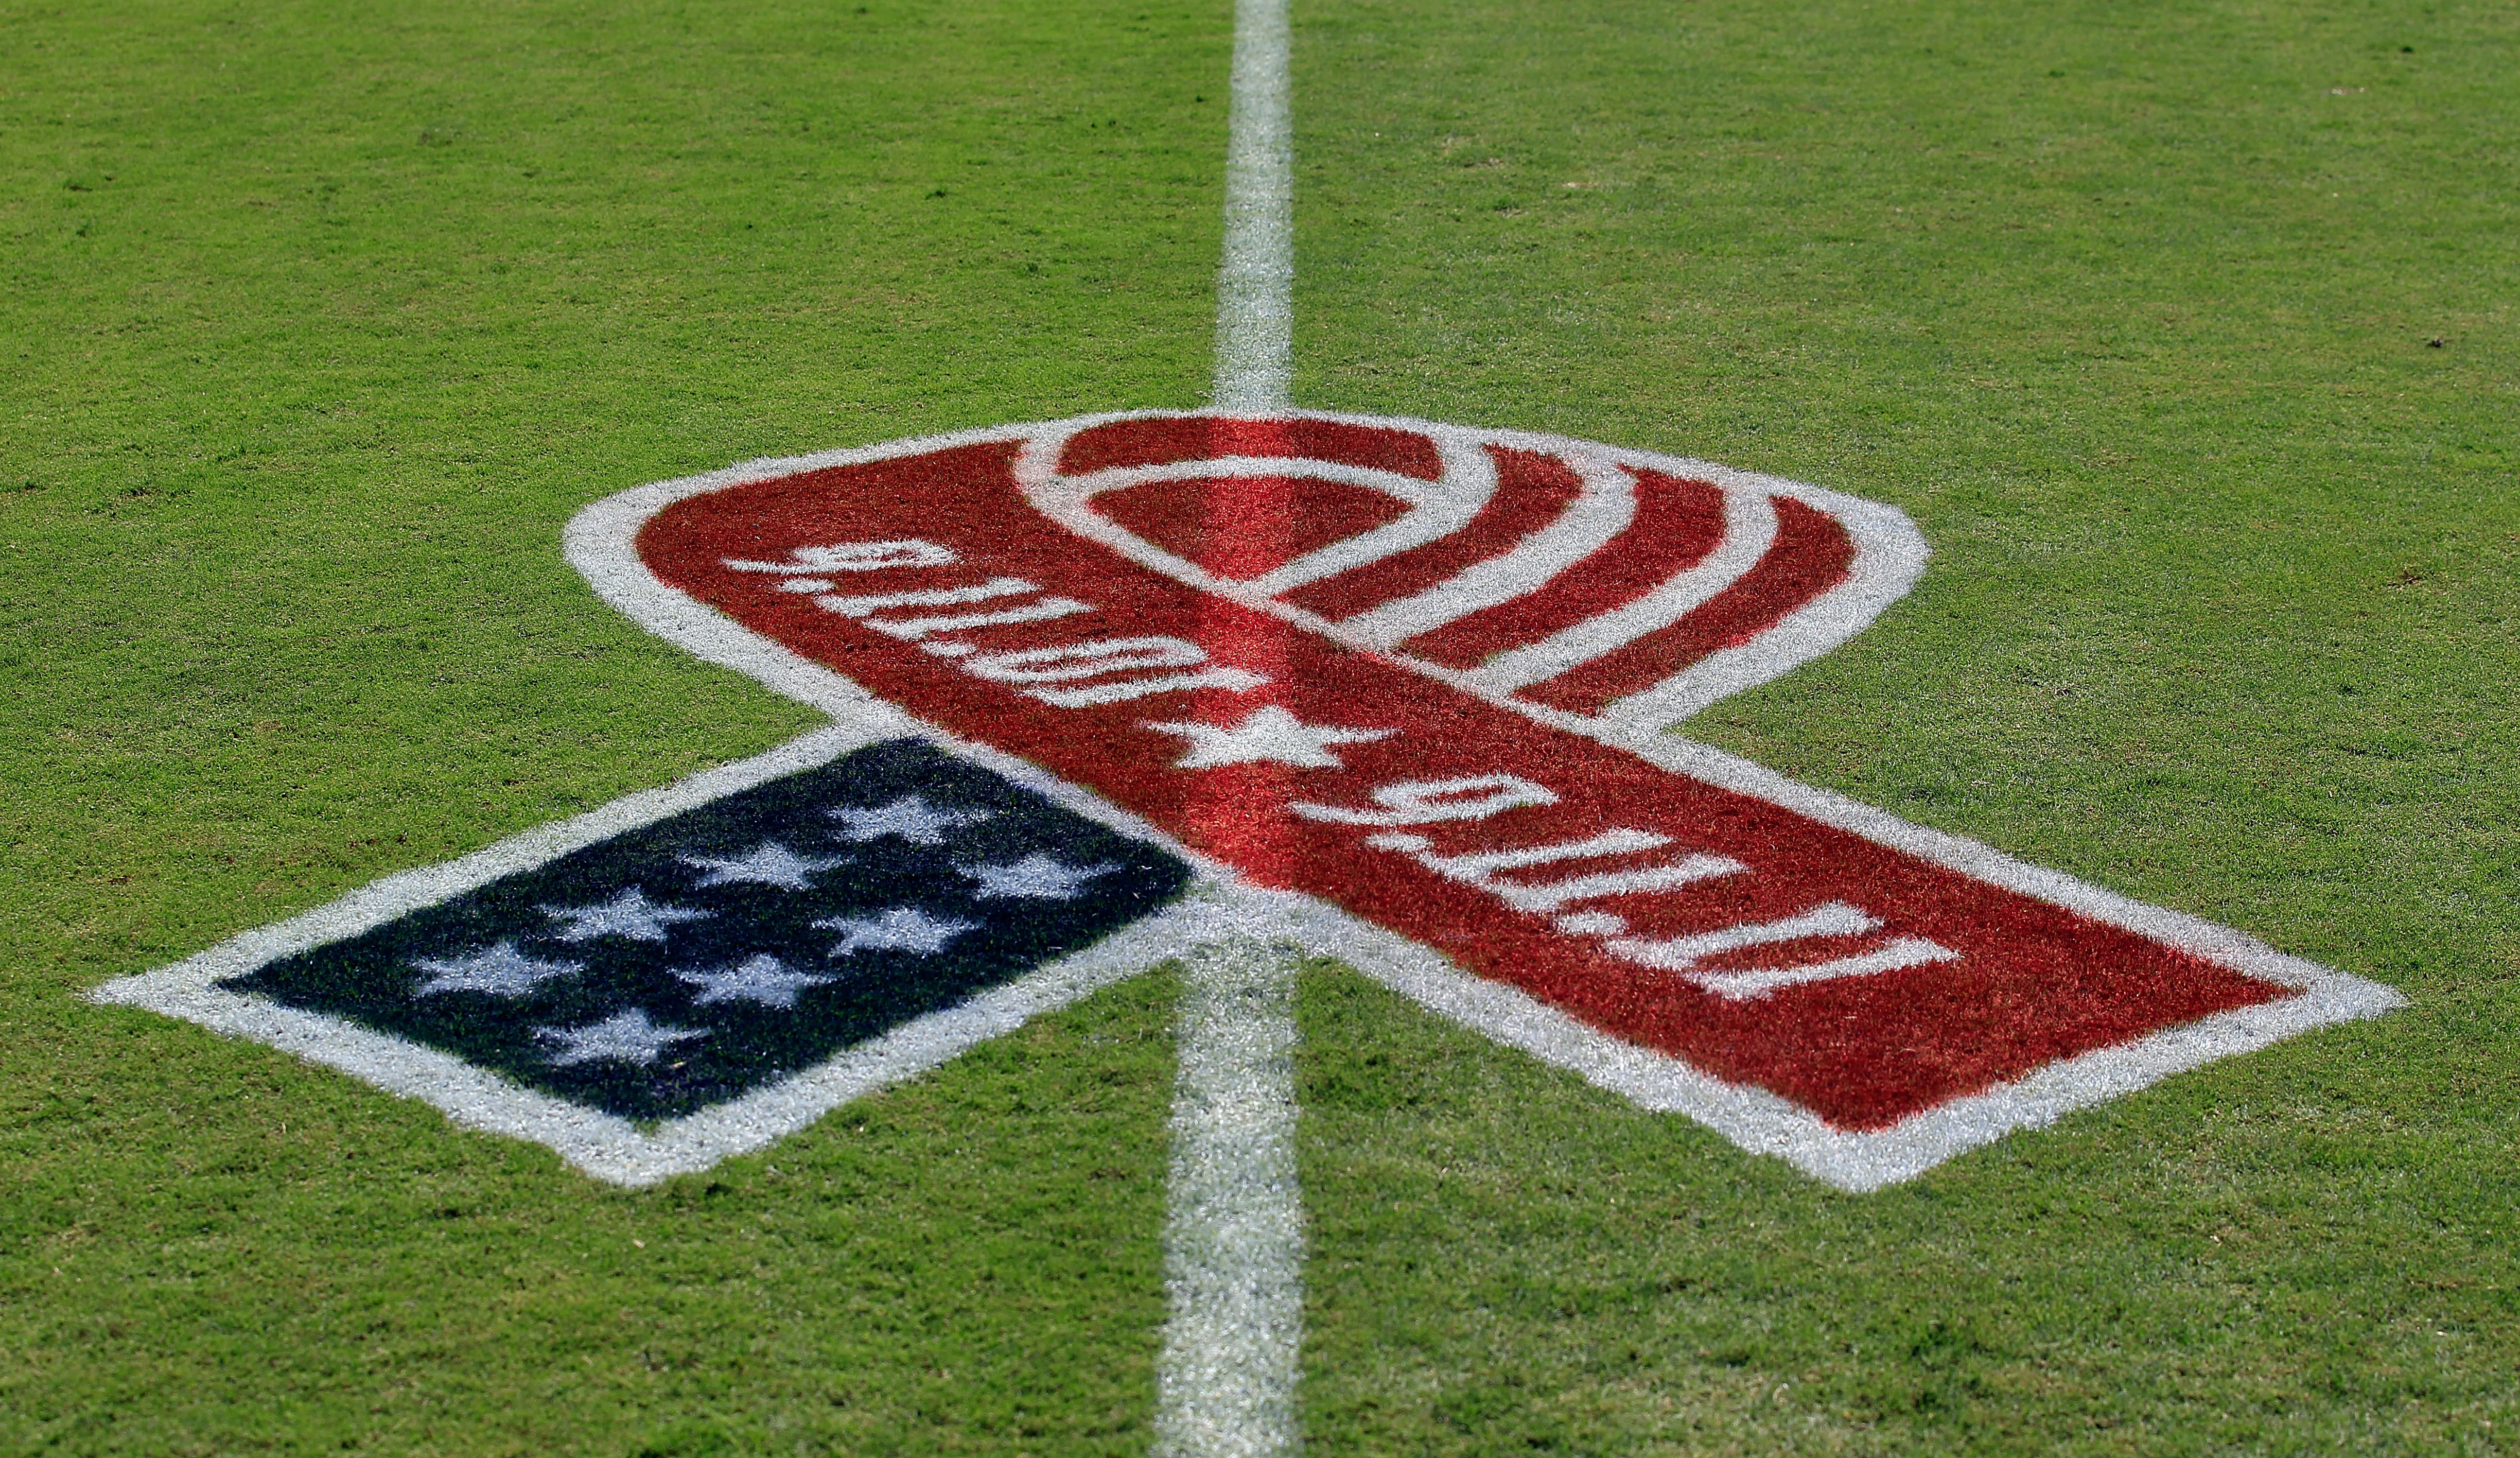 A 9/11 Memorial ribbon as seen on the field before the game between the Jacksonville Jaguars and the Tennessee Titans at EverBank Field on September 11, 2011 in Jacksonville, Florida. (Sam Greenwood—Getty)